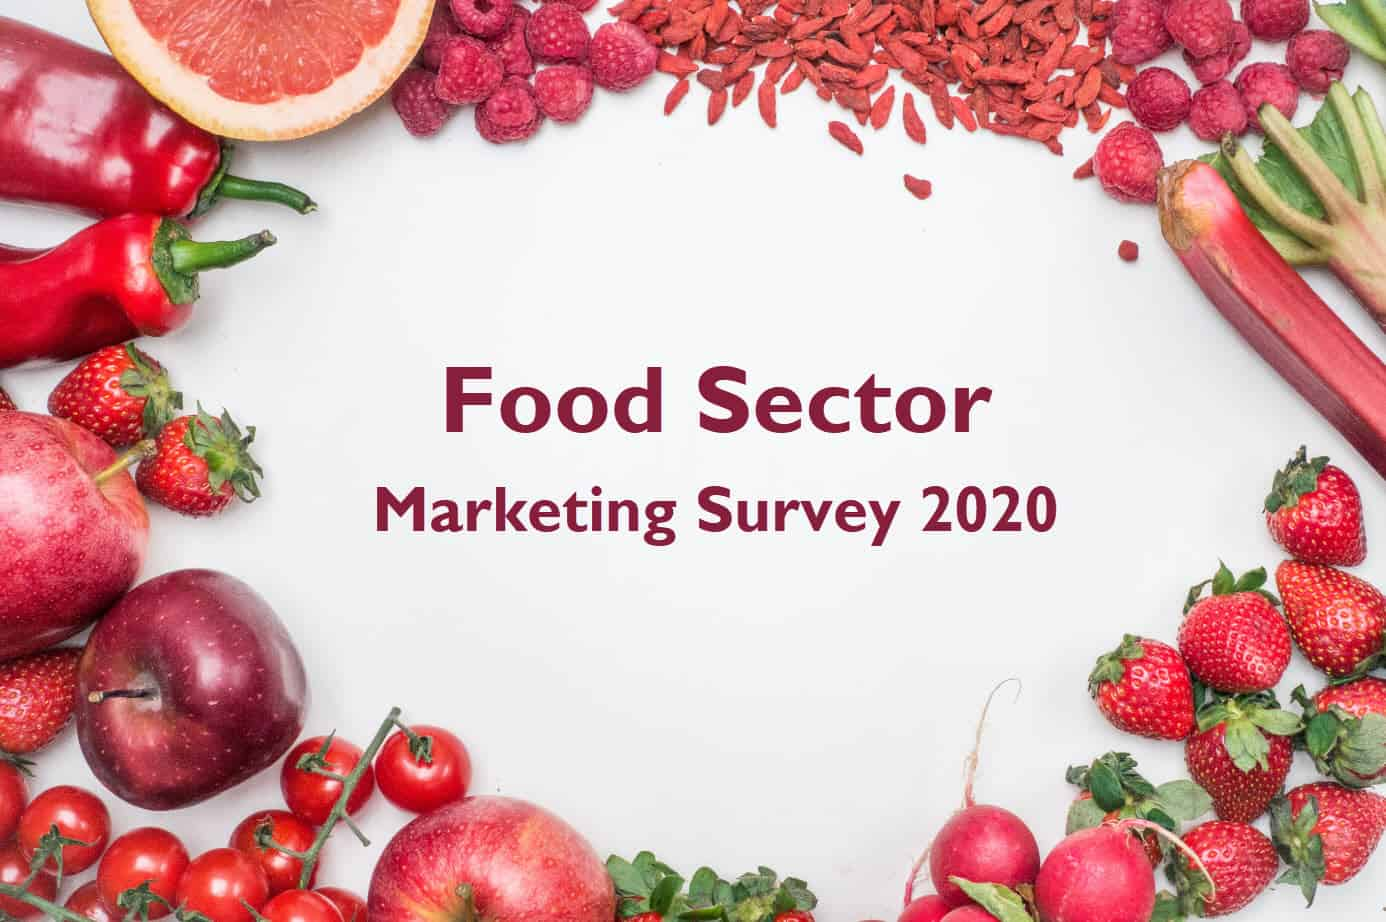 Food Sector Marketing Survey 2020 Vitariss Blue Dolphin